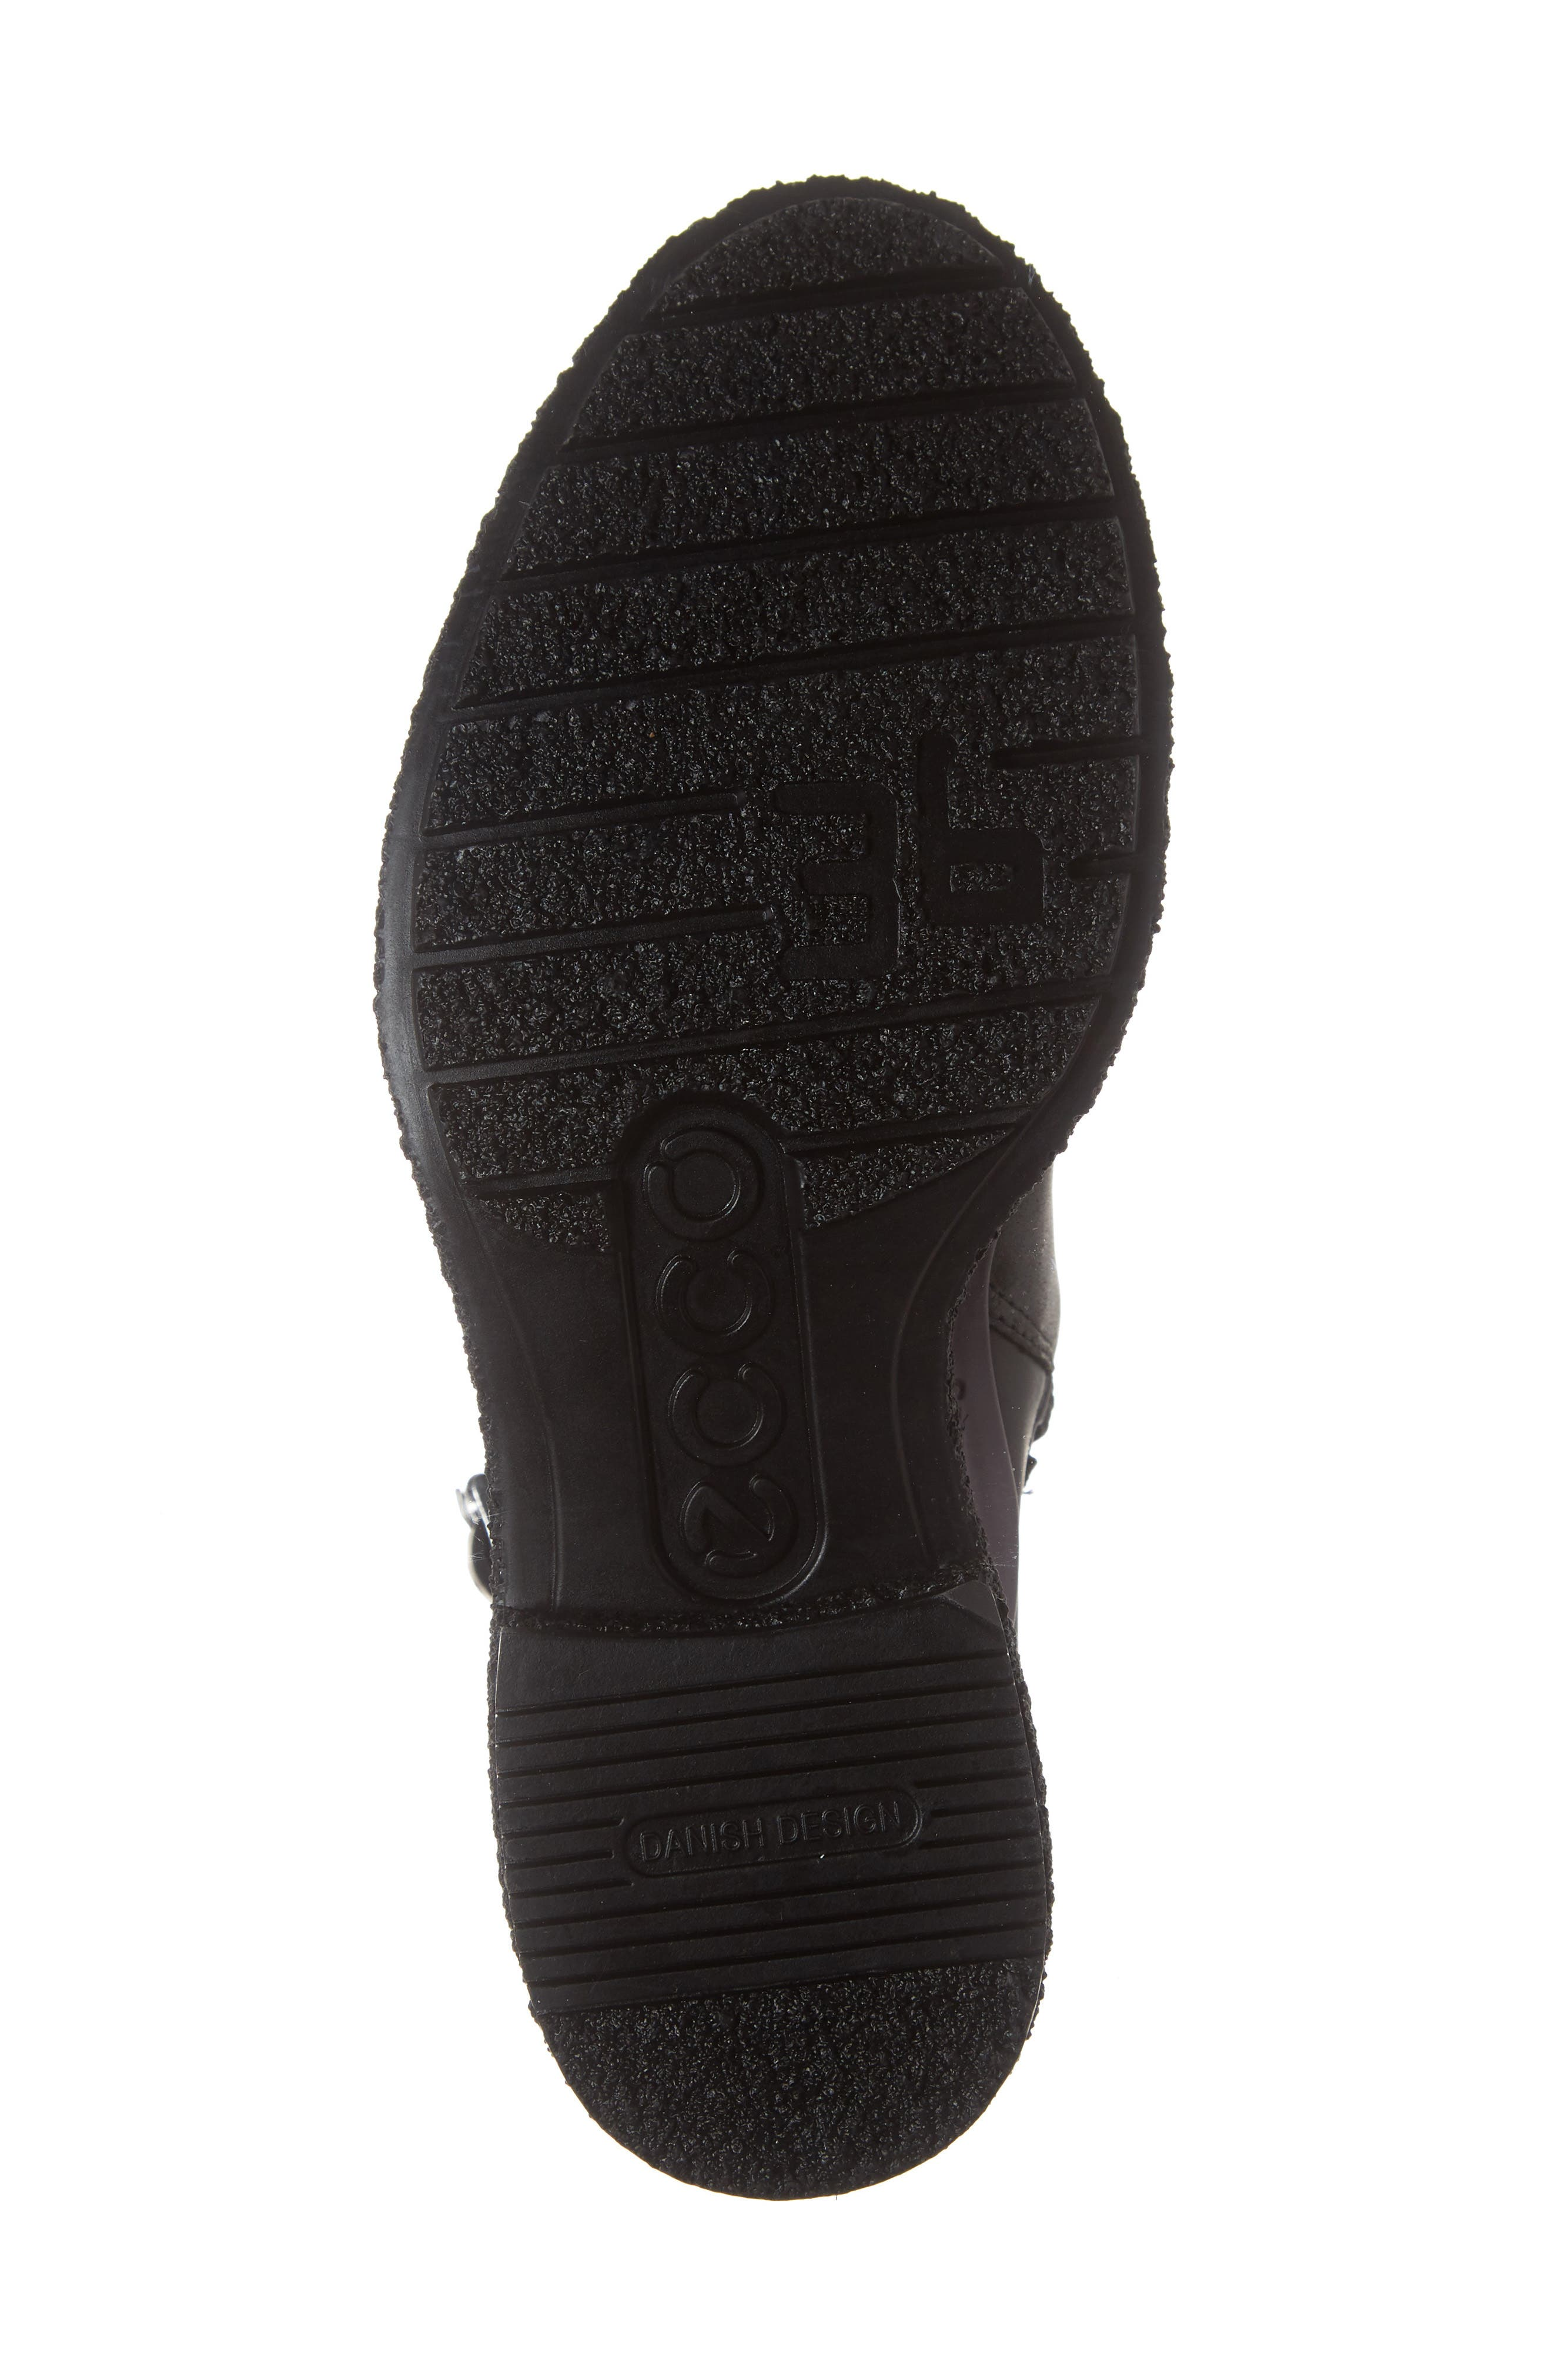 Crepetray GTX Waterproof Bootie,                             Alternate thumbnail 6, color,                             BLACK LEATHER